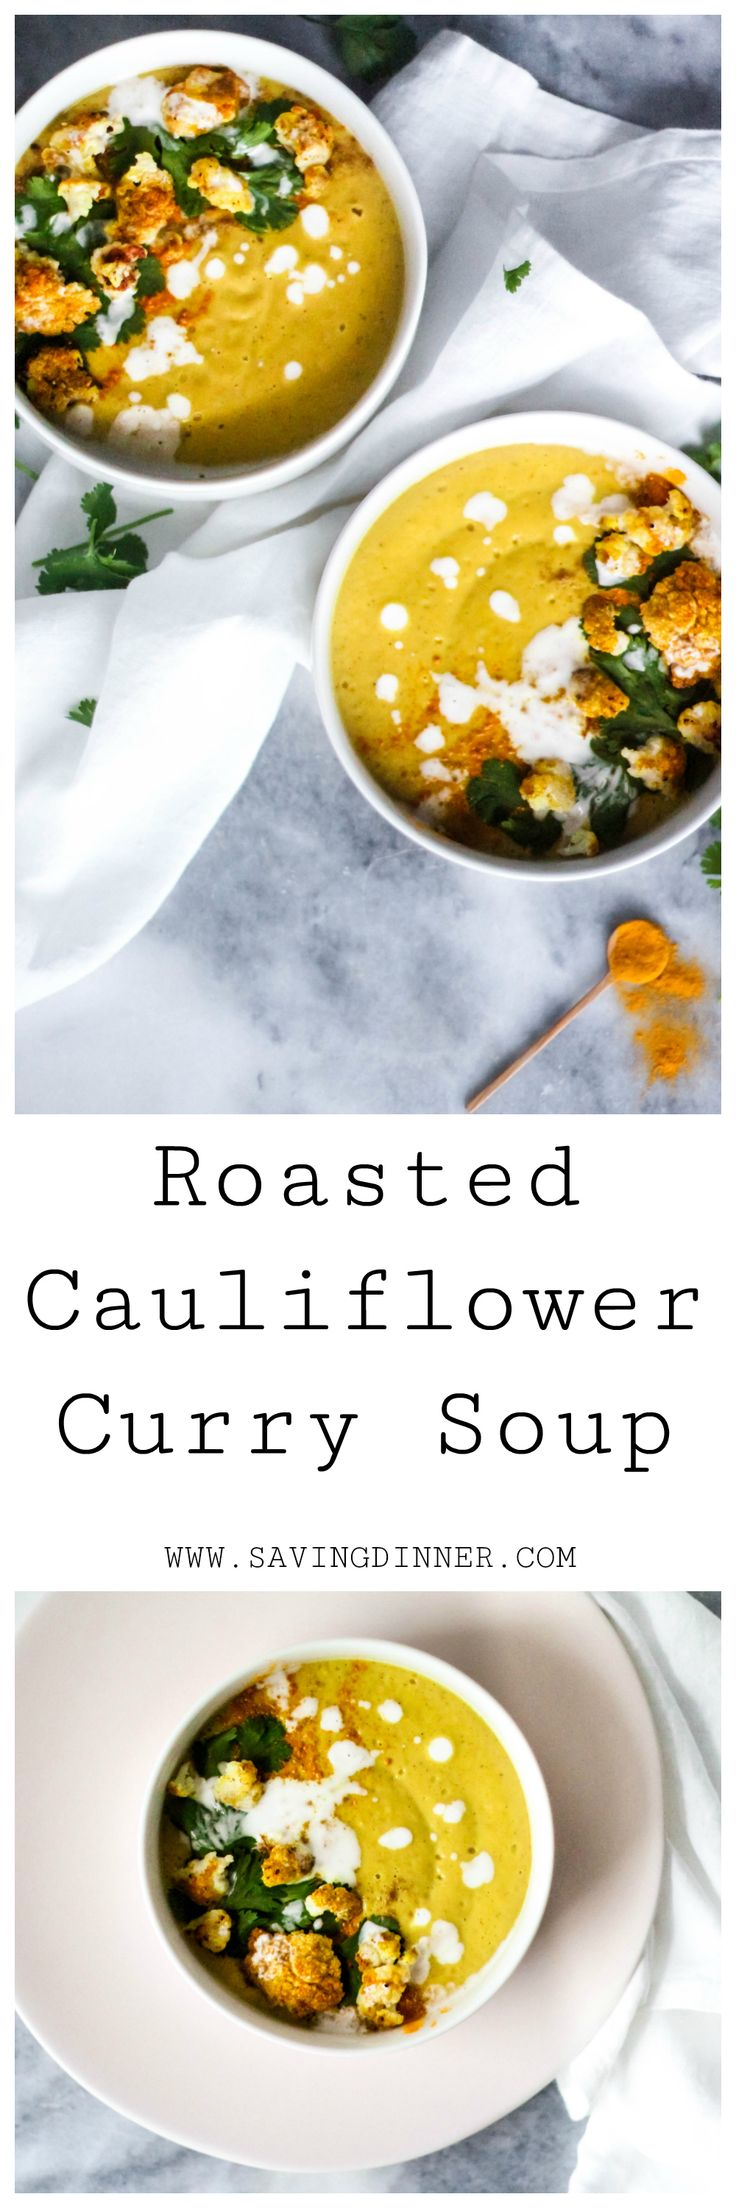 Hearty Roasted Cauliflower Curry Soup - Paleo Approved, Whole 30 Approved, Dairy-Free, simple recipe for a delicious dinner!